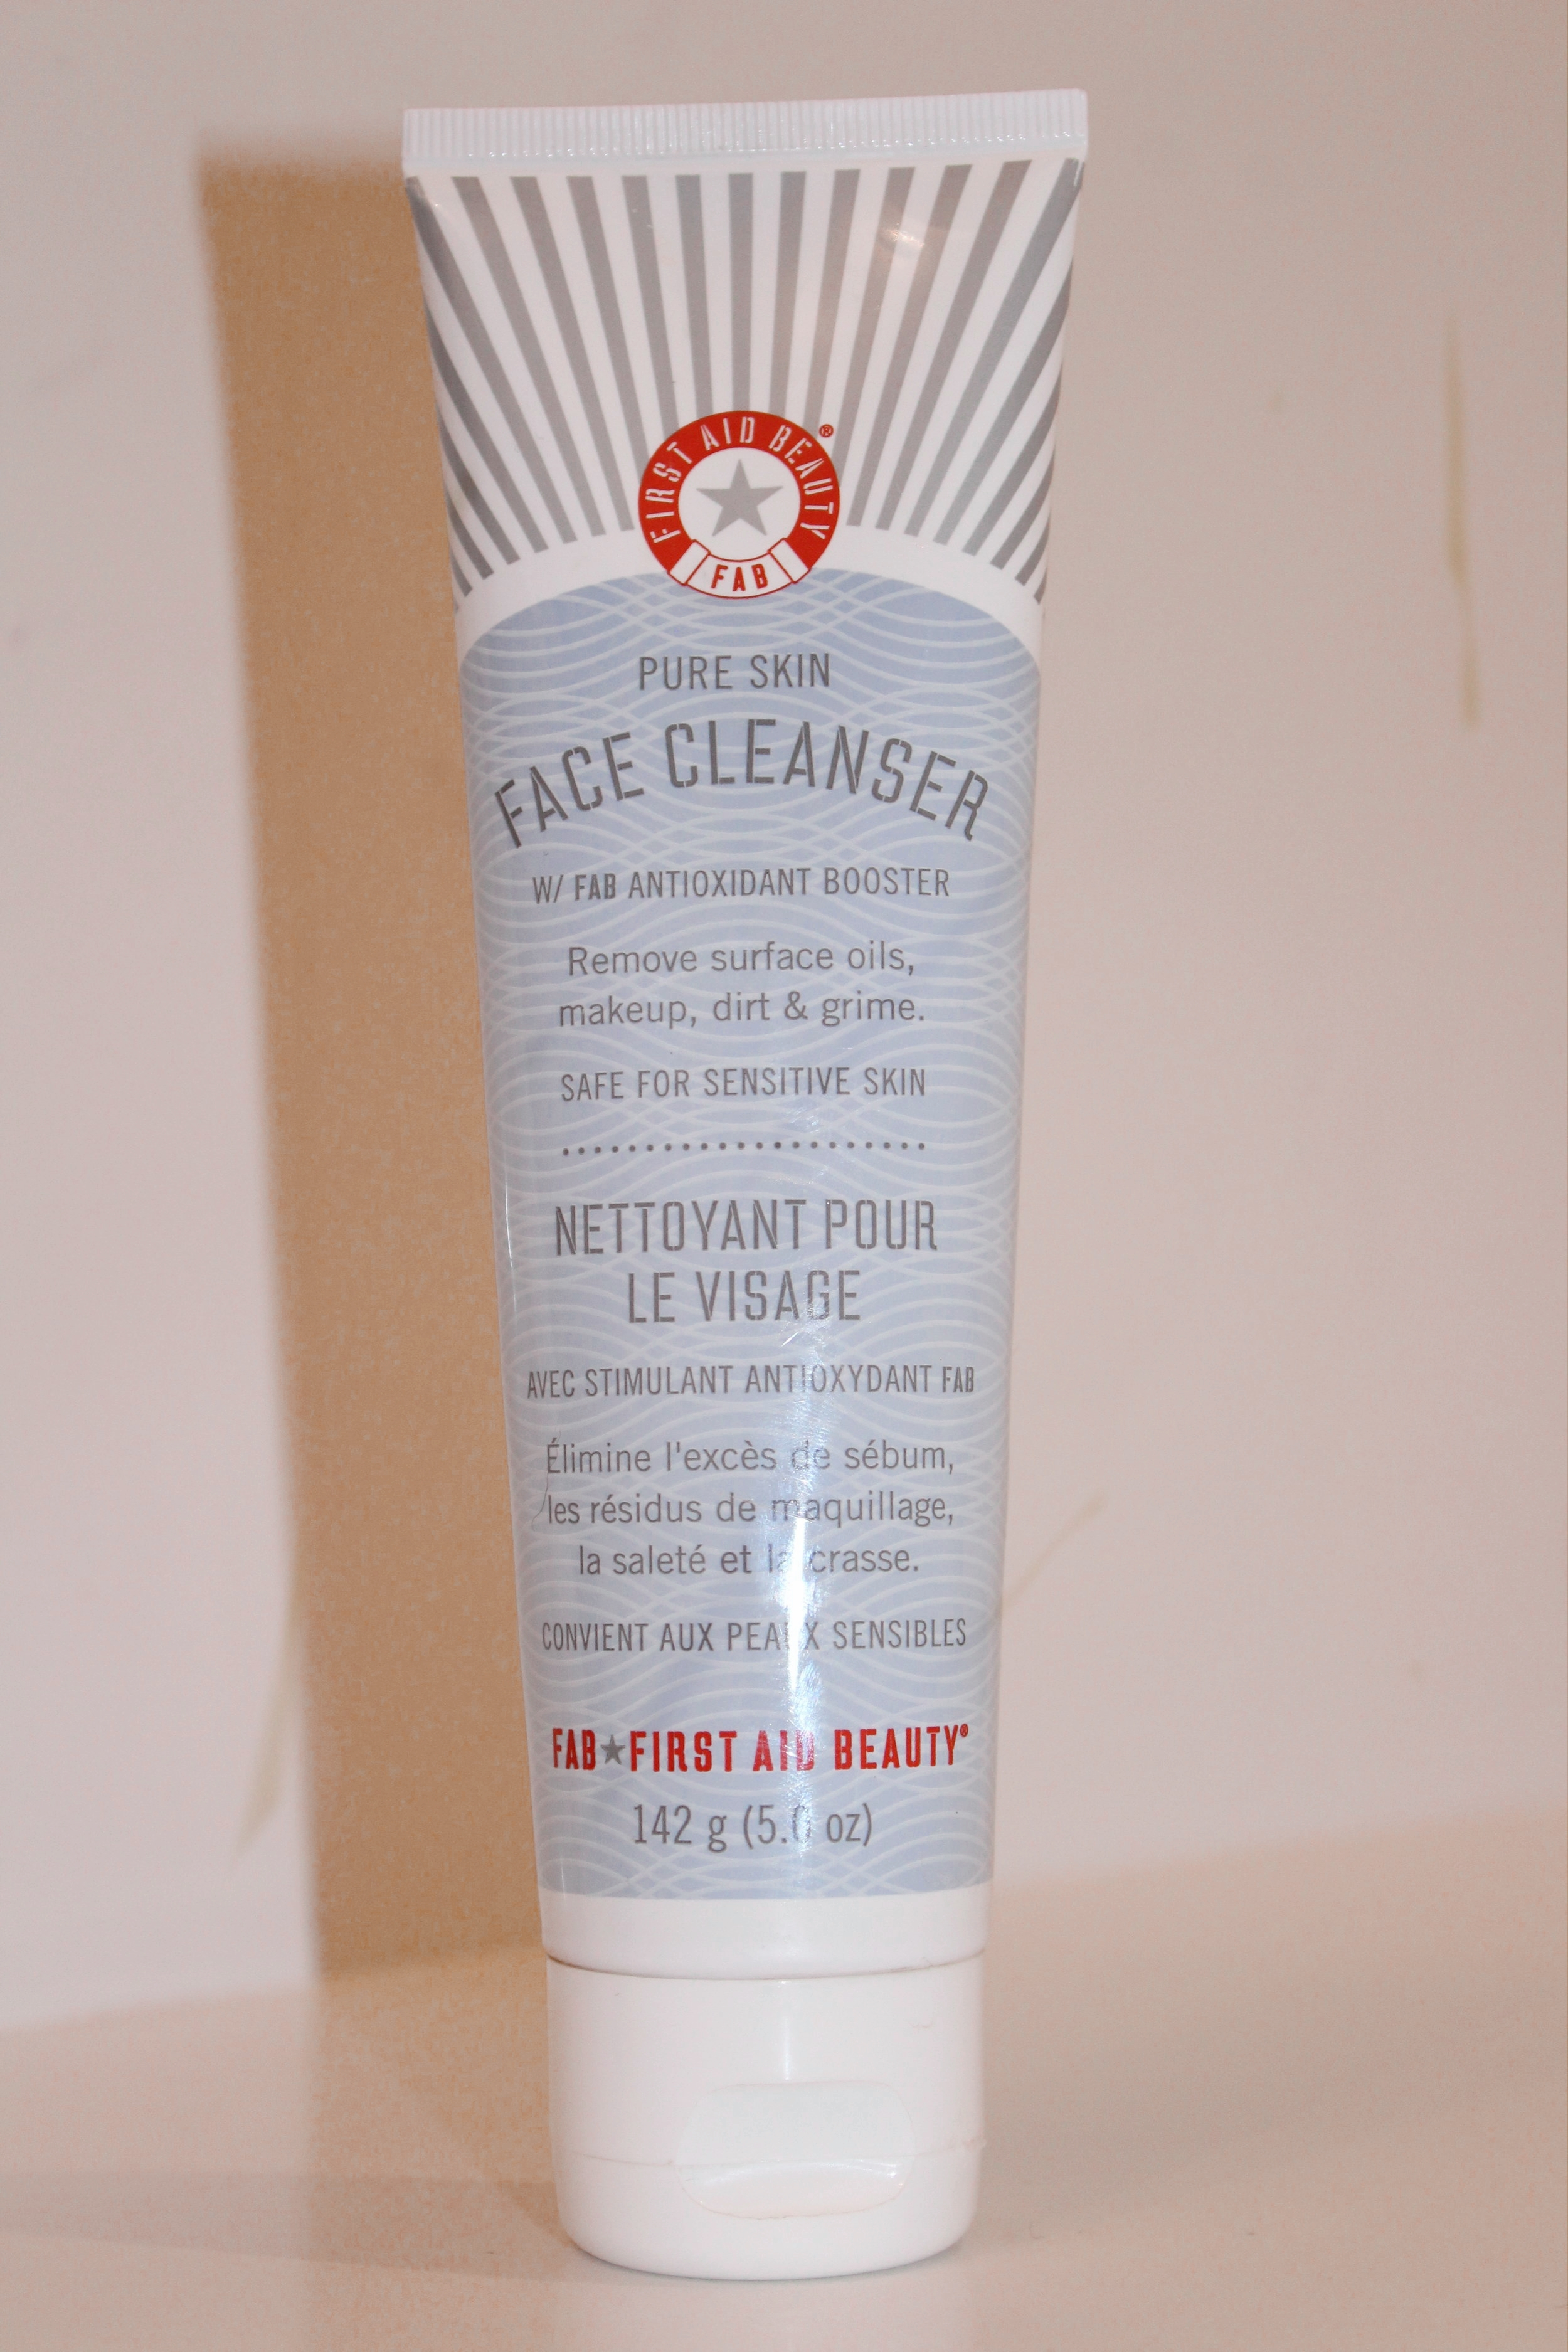 FIRST AID BEAUTY FACE CLEANSER - I use this face wash every other night and it is so good! It is moisturizing and removes all the dirt and makeup on my skin, but is still super gentle. It lasts a long time and is definitely worth every penny!